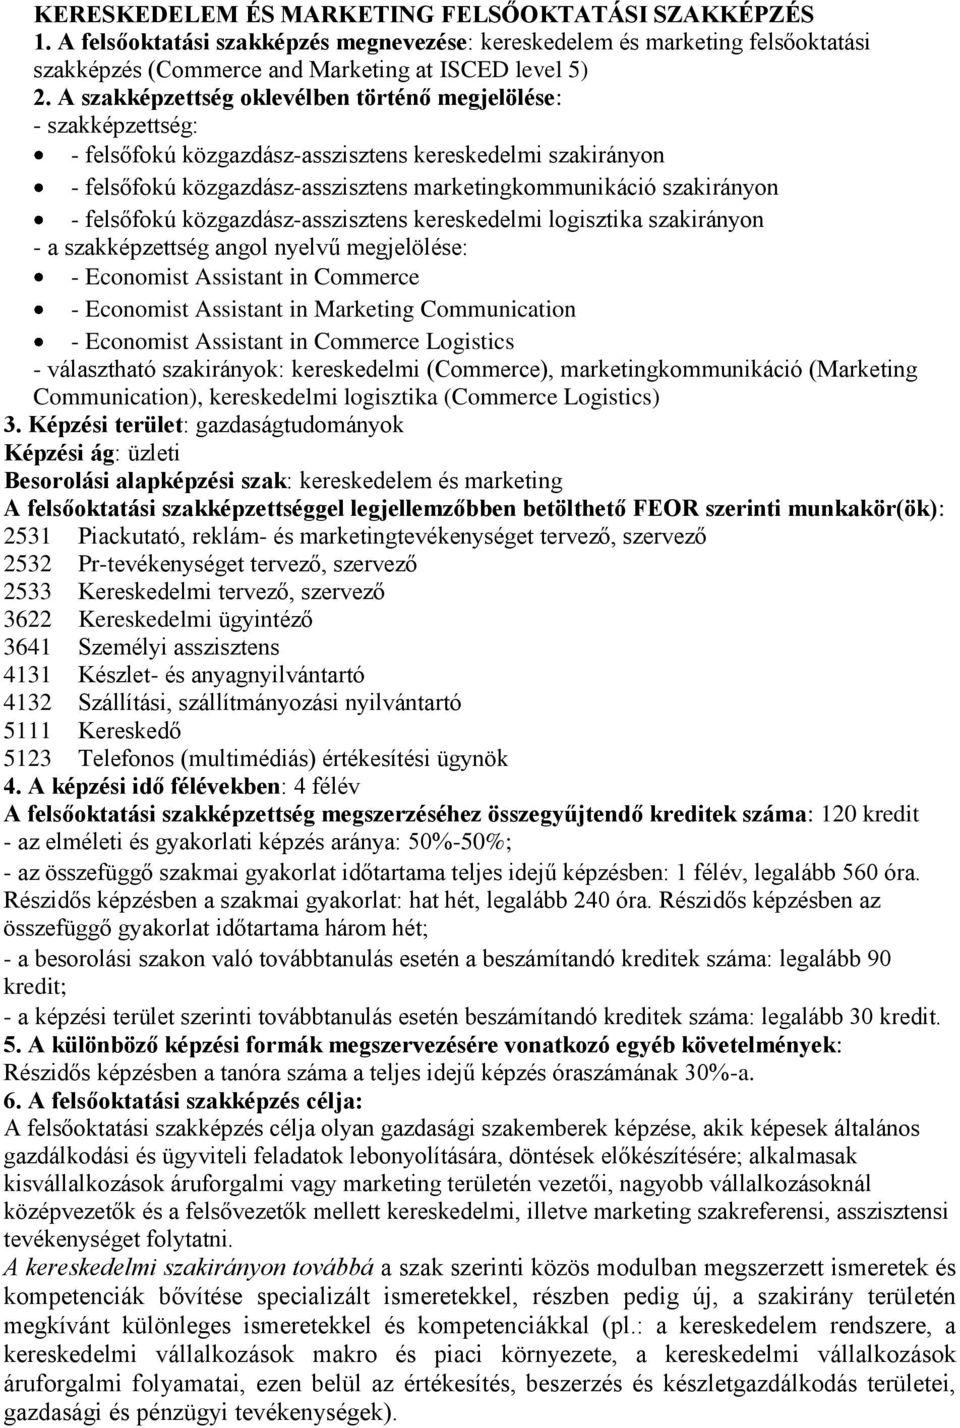 felsőfokú közgazdász-asszisztens kereskedelmi logisztika szakirányon - a szakképzettség angol nyelvű megjelölése: - Economist Assistant in Commerce - Economist Assistant in Marketing Communication -